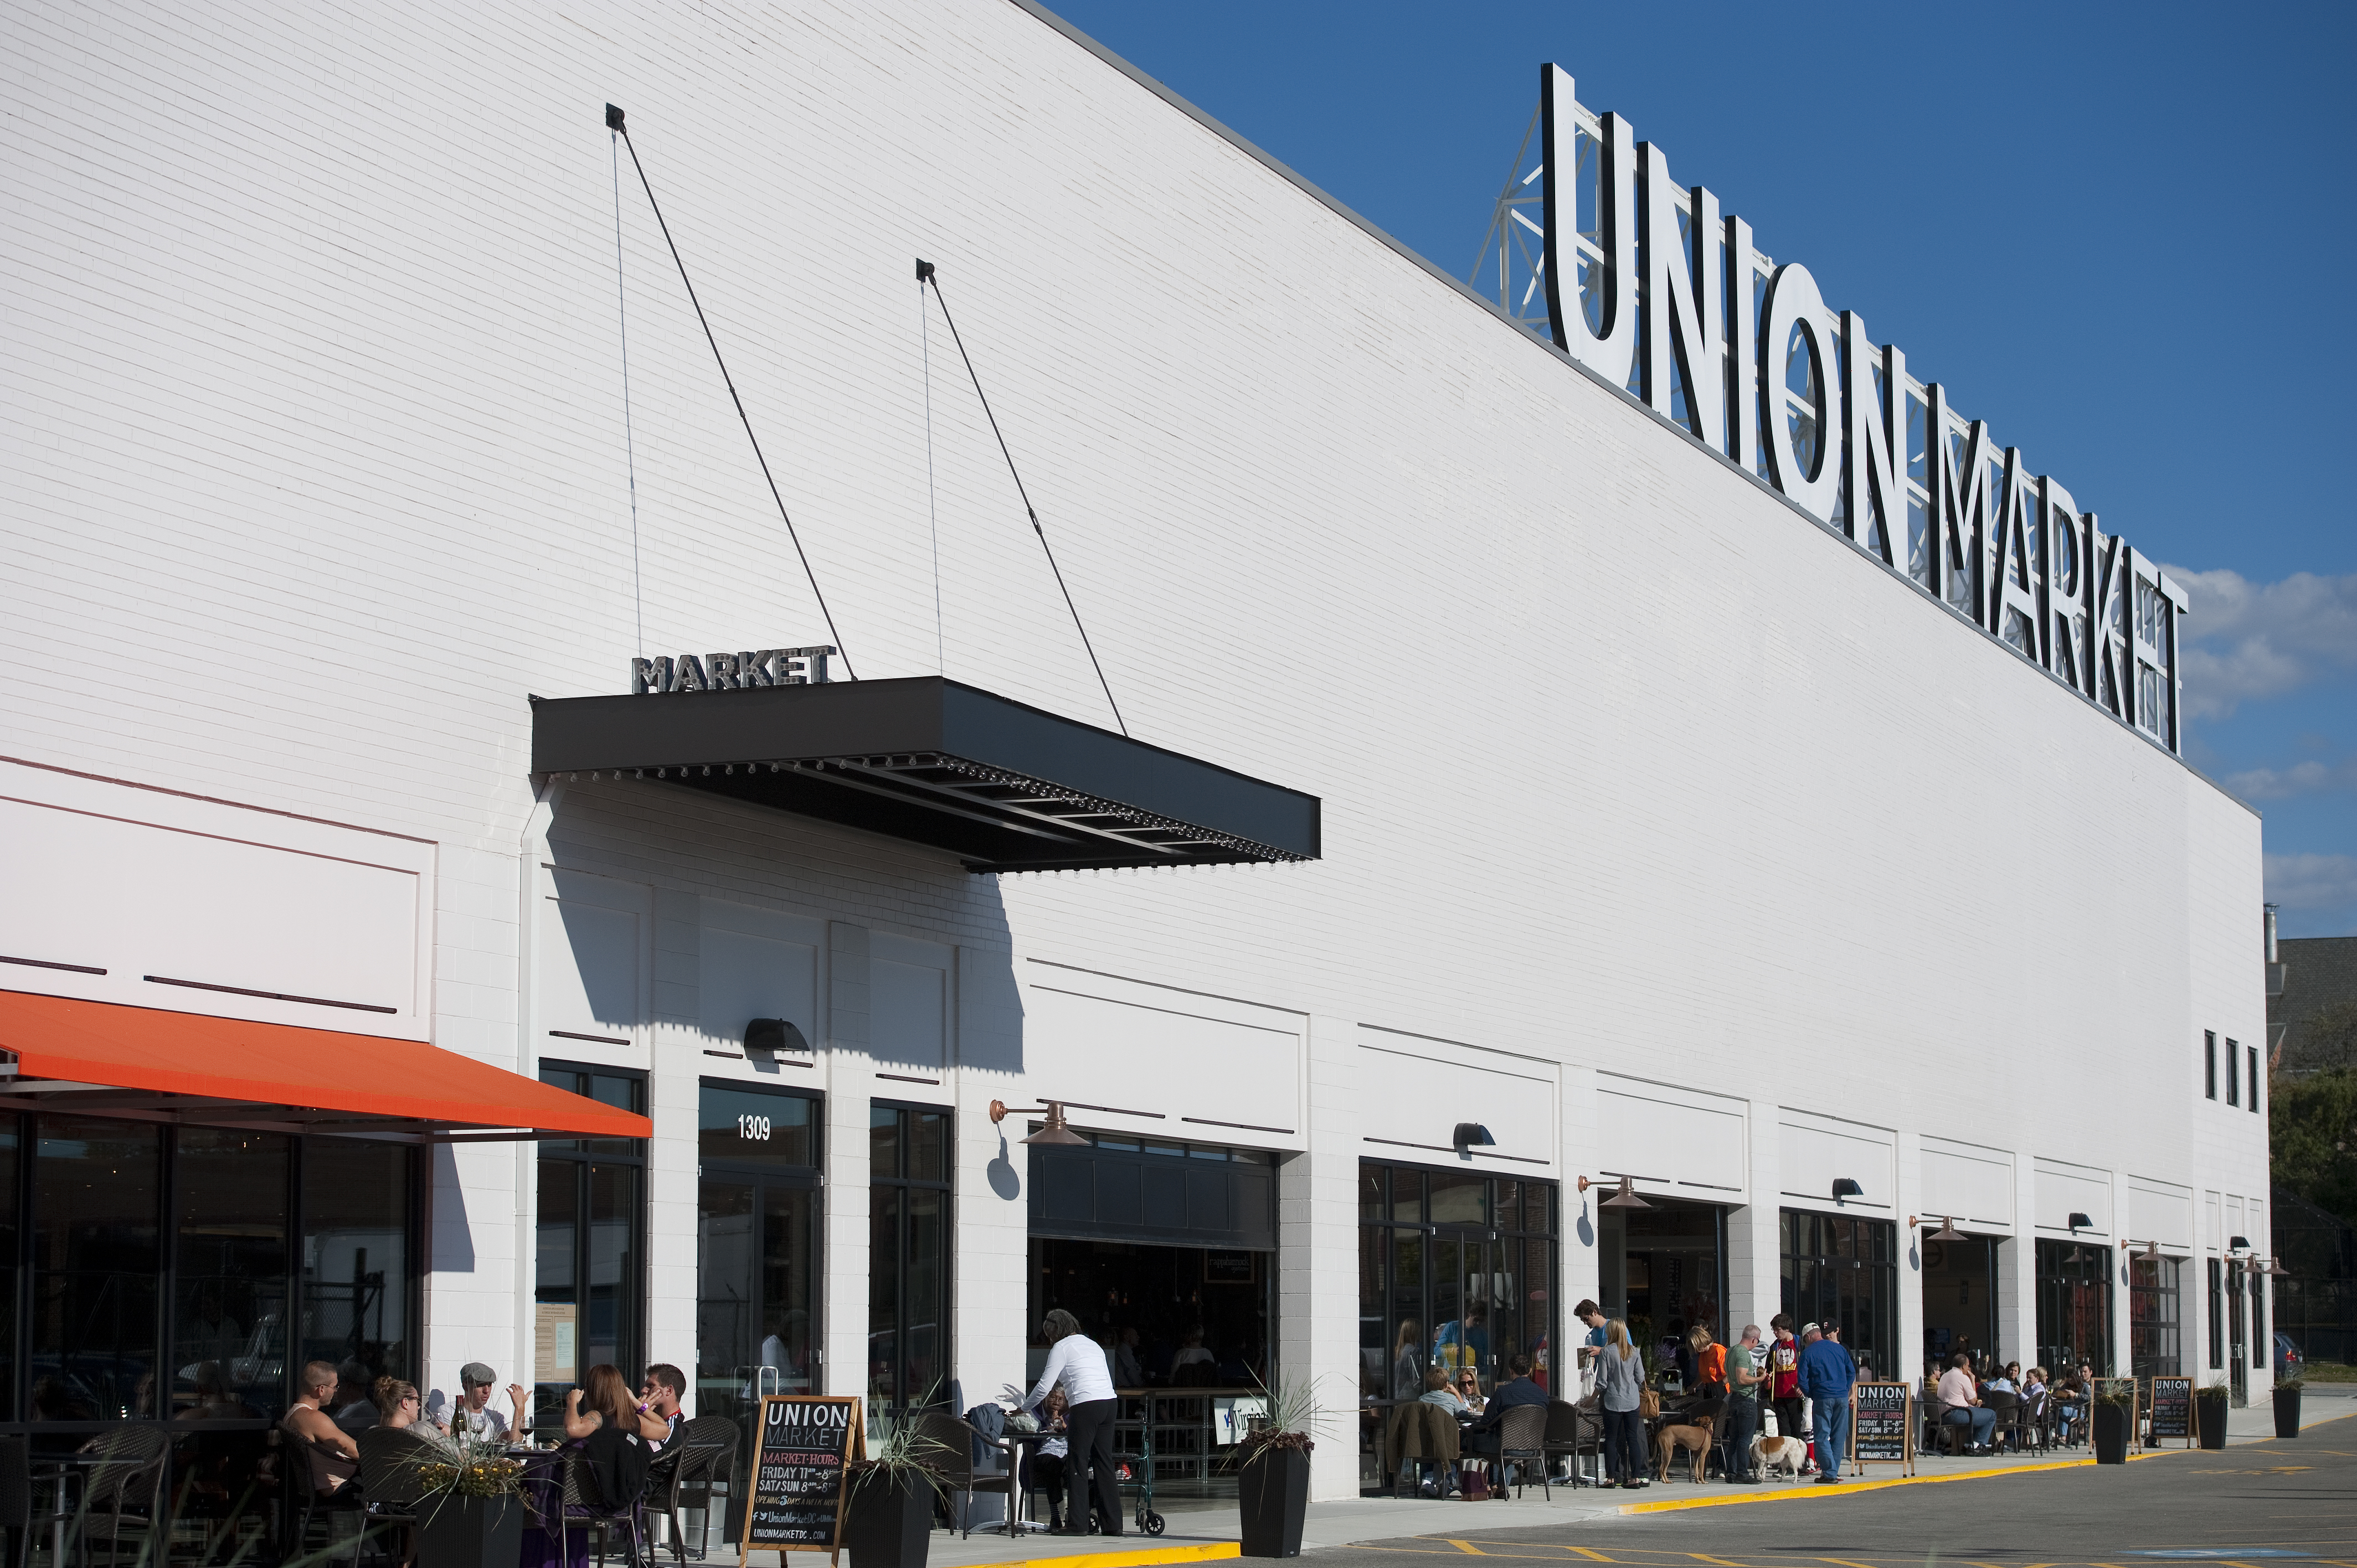 Union Market, a wide warehouse-like building with groups of people sitting out front.